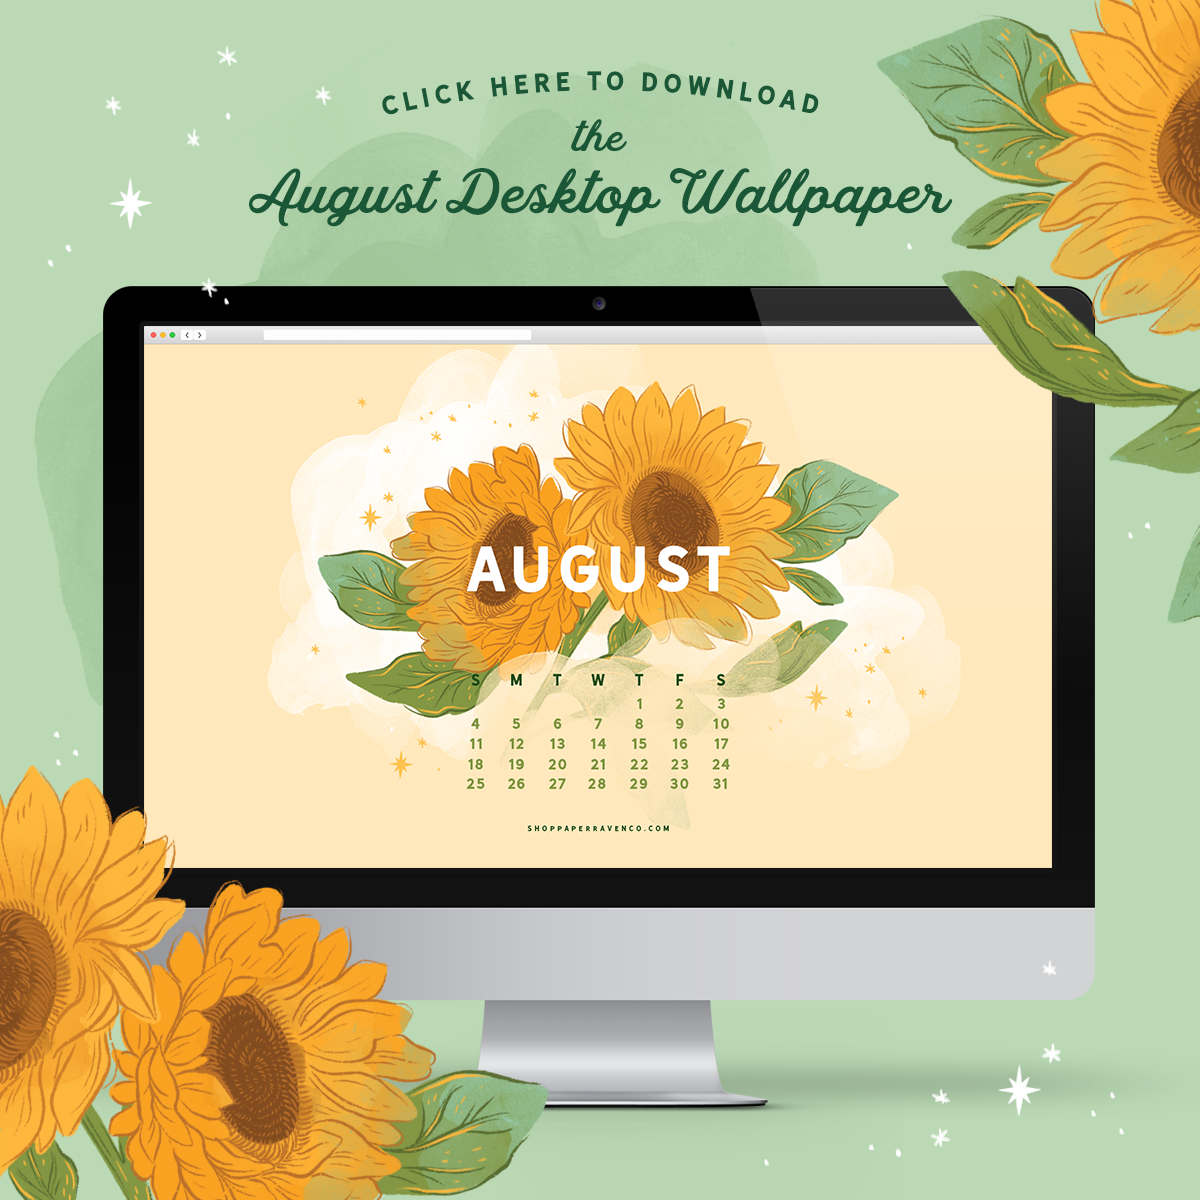 August 2019 Illustrated Desktop Wallpaper by Paper Raven Co. at www.ShopPaperRavenCo.com #dressyourtech #desktopwallpaper #desktopdownload